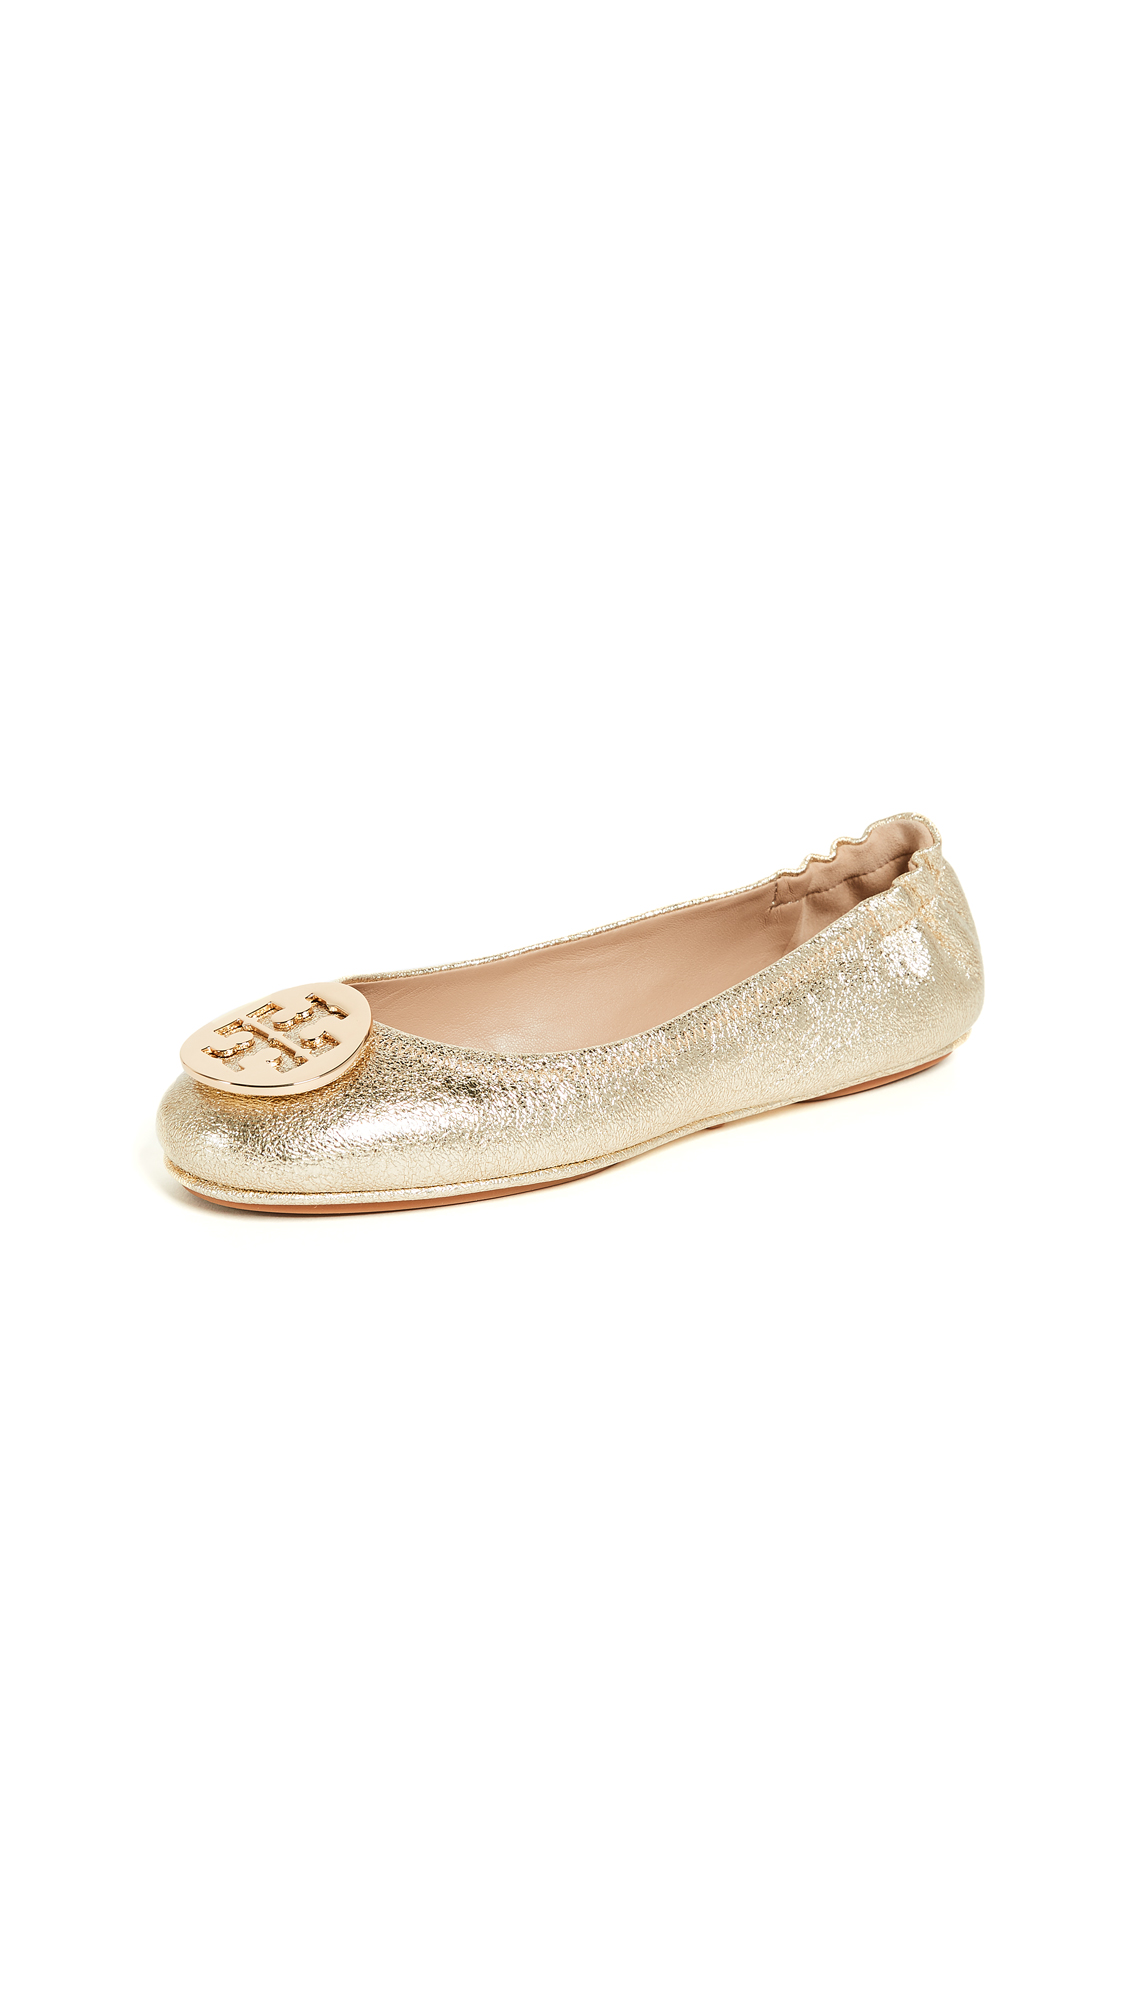 Tory Burch Minnie Travel Ballet Flats - Spark Gold